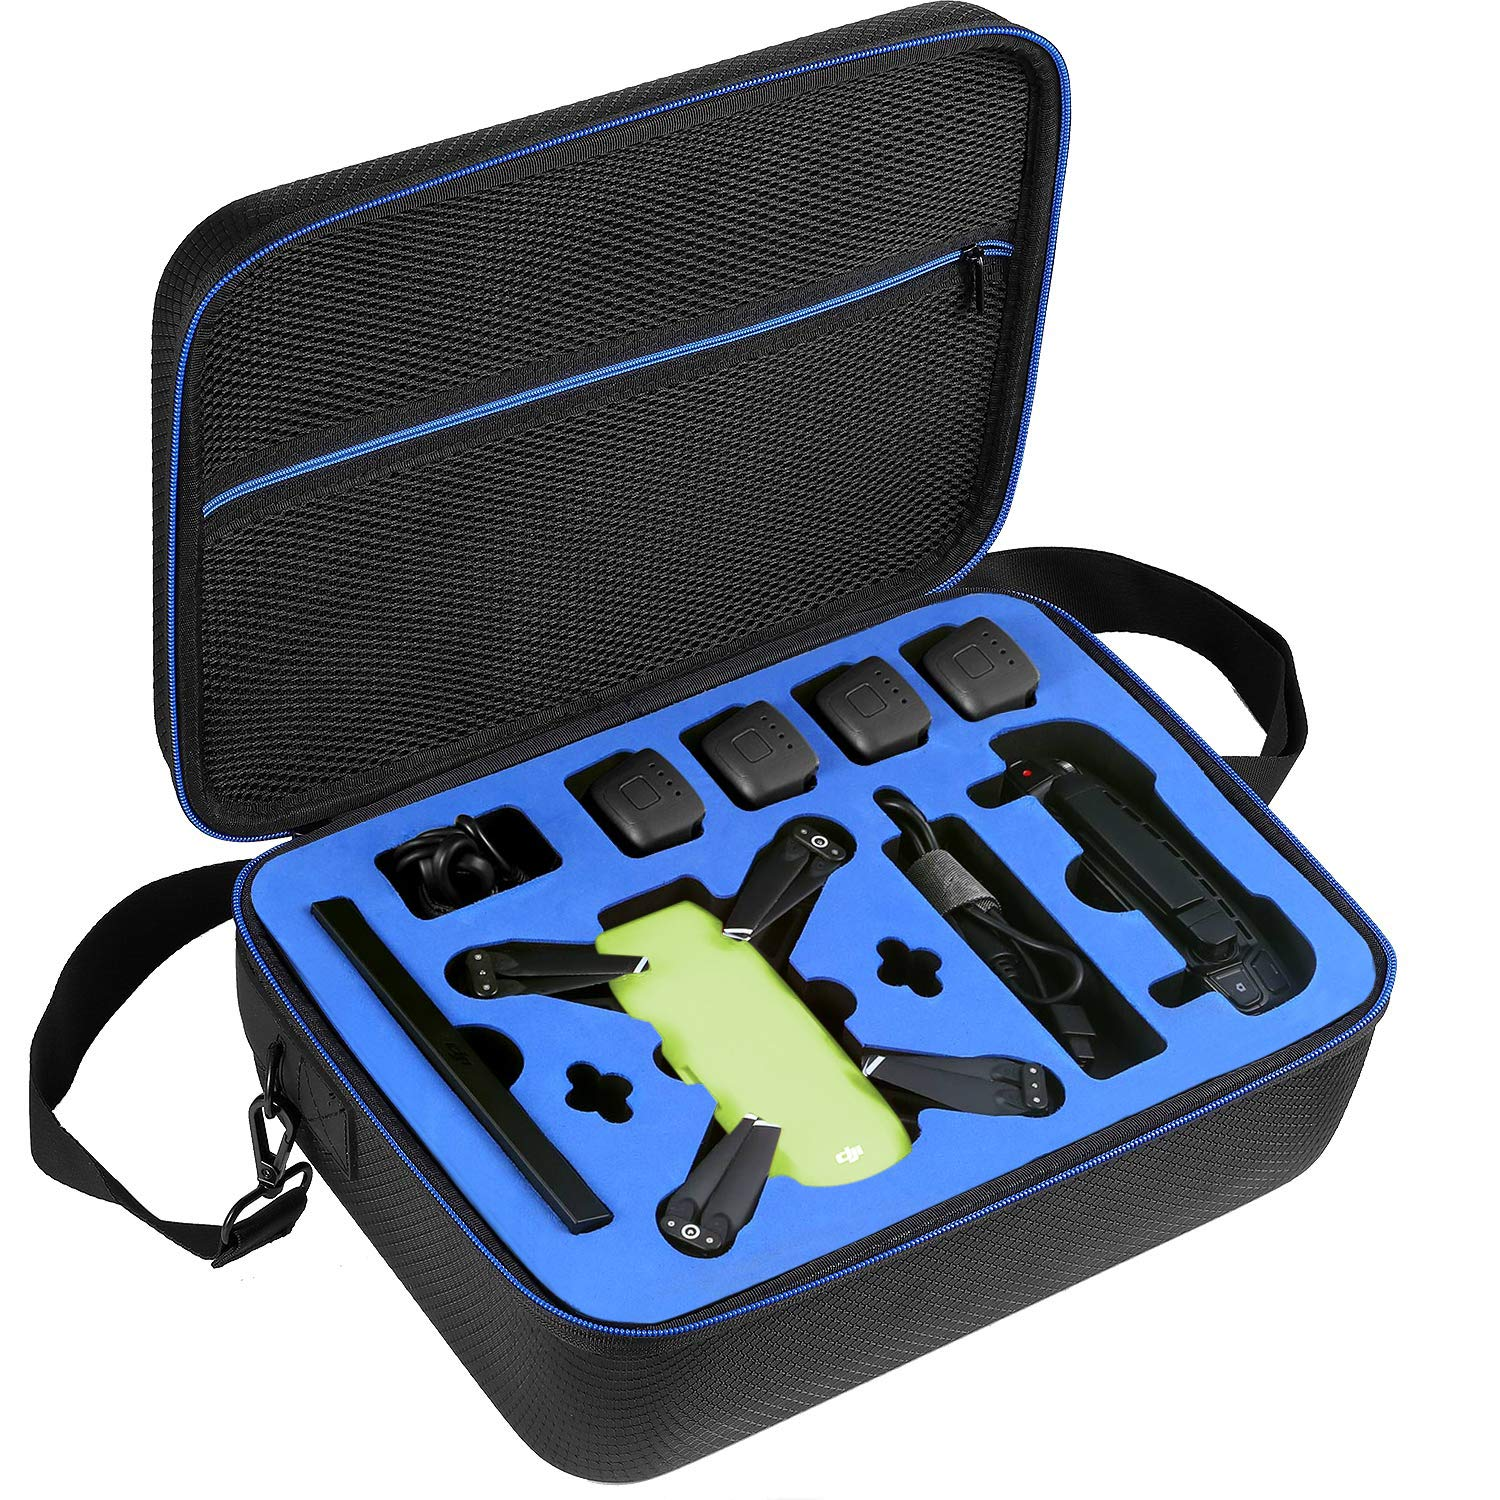 D DACCKIT Travel Carrying Case Compatible with DJI Spark Fly More Combo - Fit DJI Spark Drone, 4X Intelligent Flight Batteries, Remote Controller, Charging Hub and Other Accessories by D DACCKIT